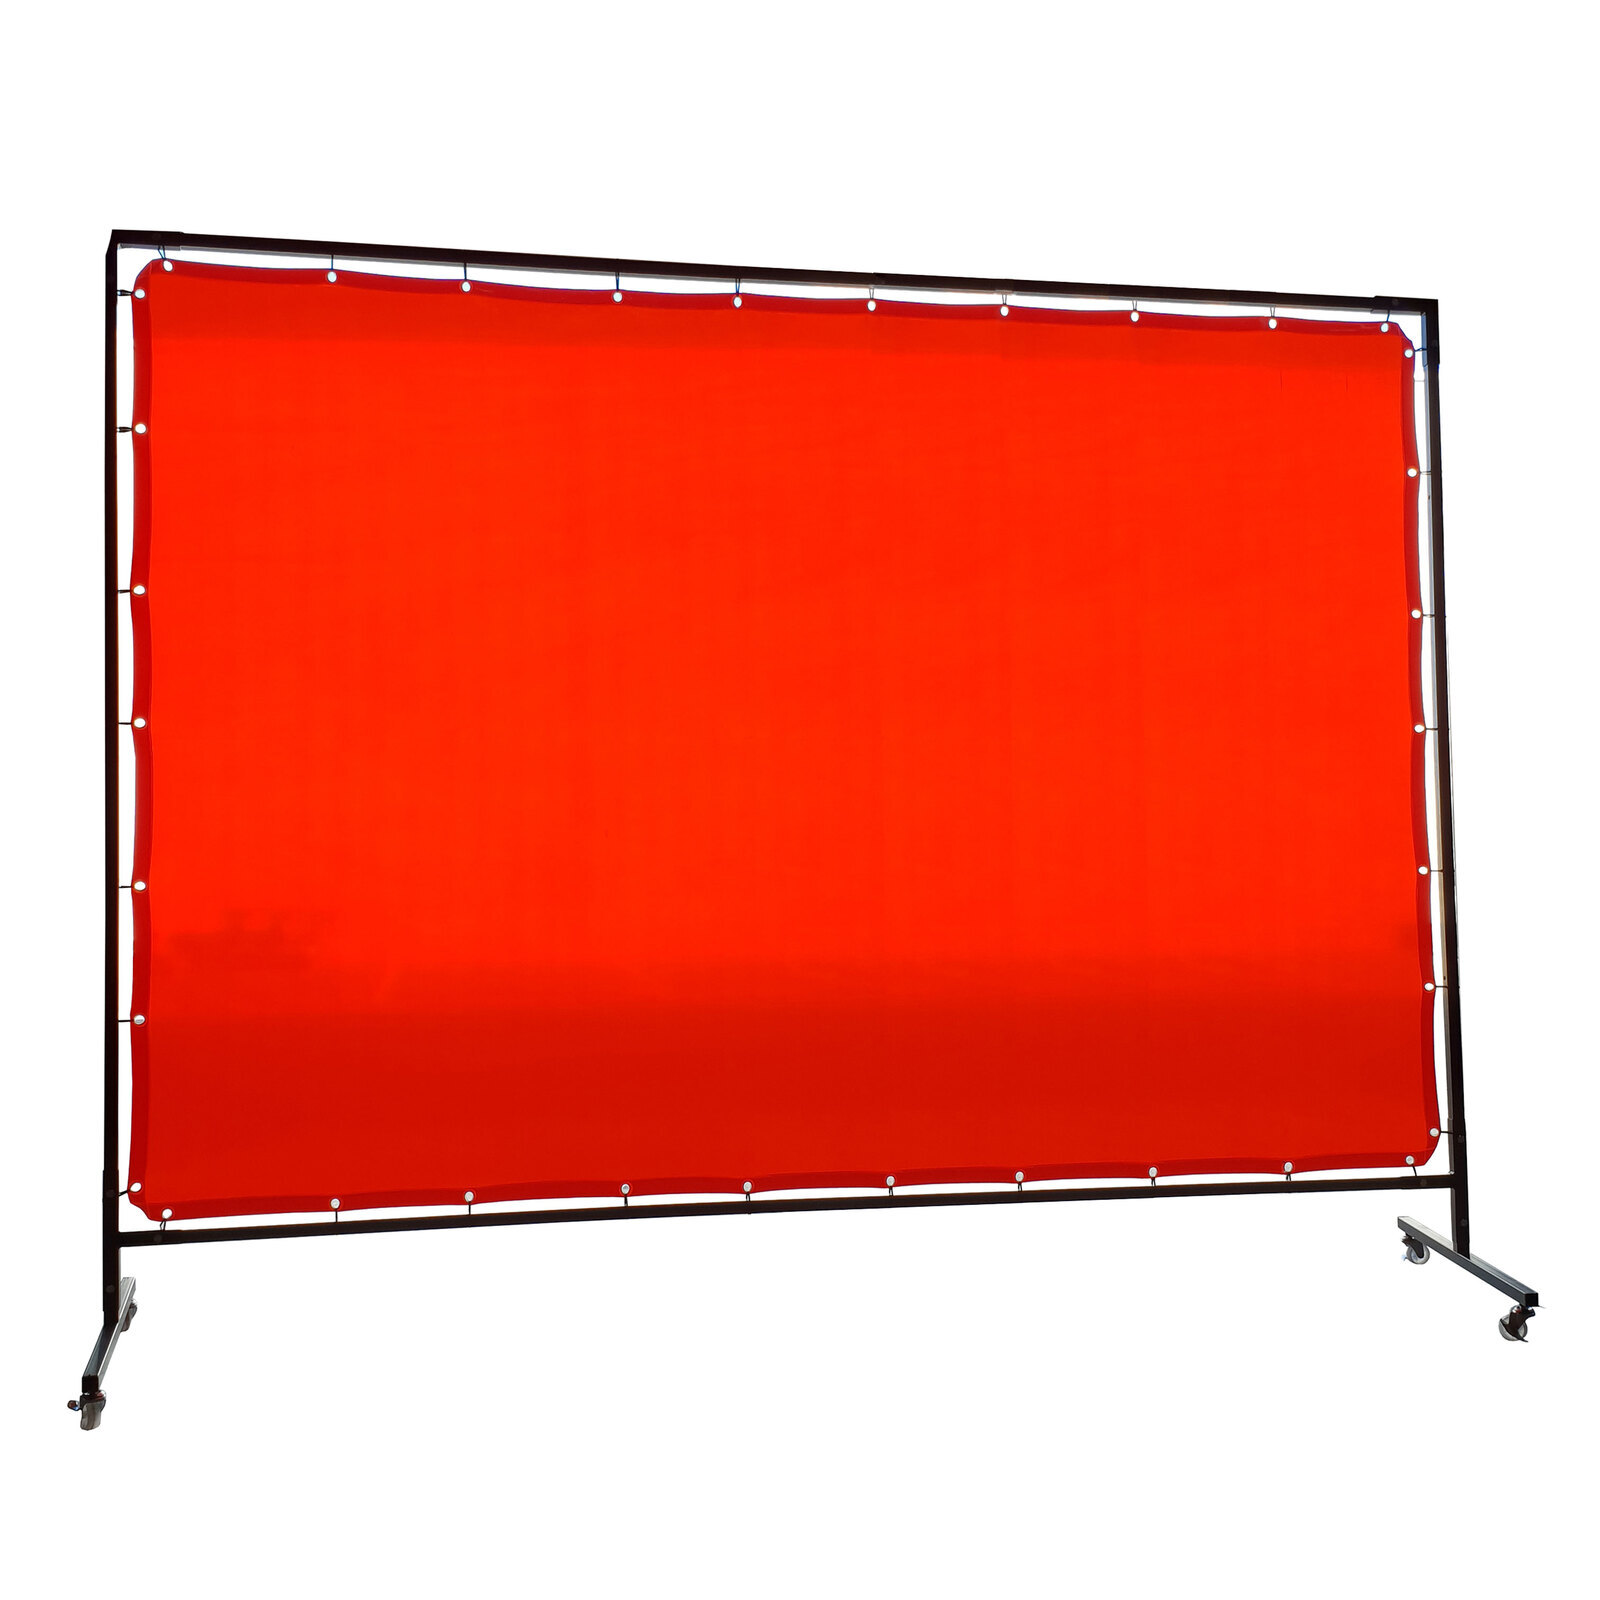 1.8 x 3.4m Red Welding Curtain / Screen and frame Combo